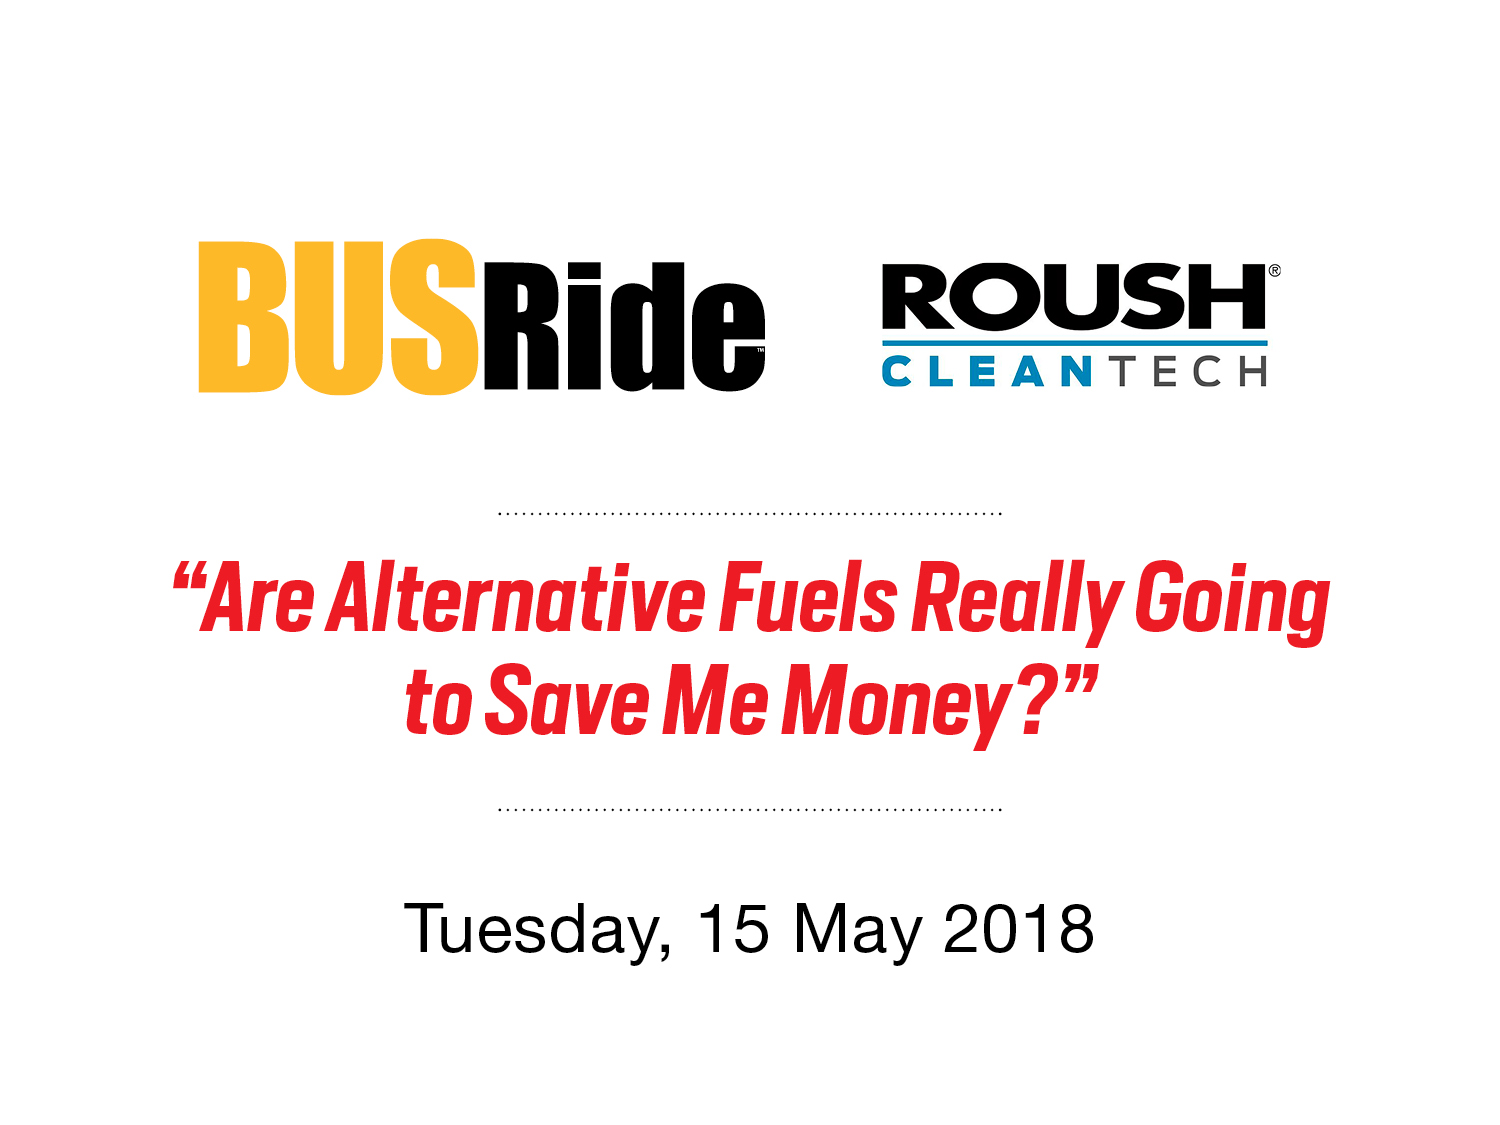 Are Alternative Fuels Really Going to Save Me Money?